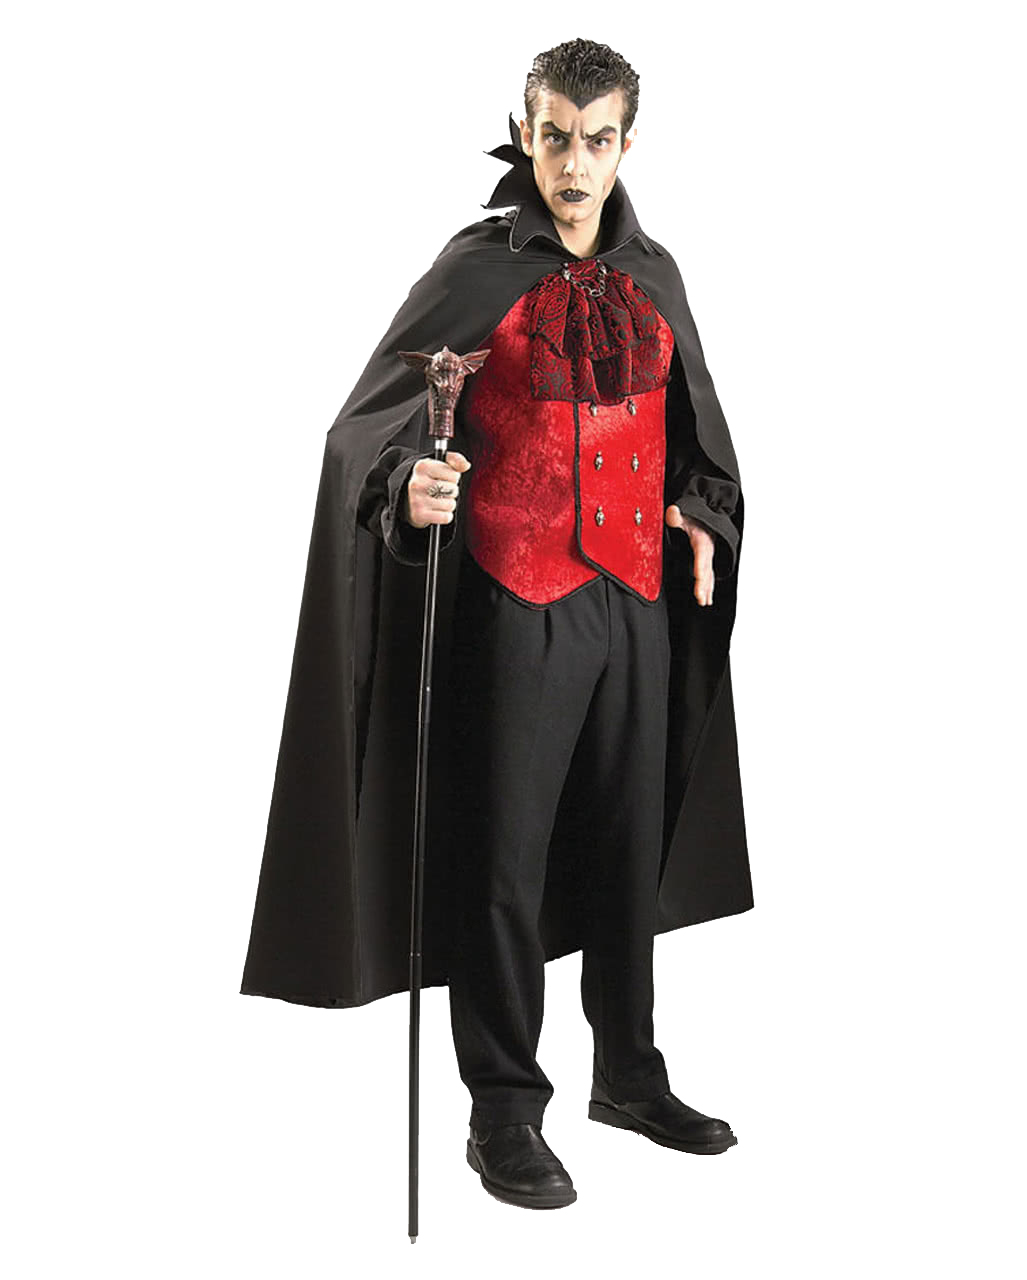 Gothic Count Dracula costume | V&ire costumes for Halloween | horror-shop.com  sc 1 st  Horror-Shop.com & Gothic Count Dracula costume | Vampire costumes for Halloween ...